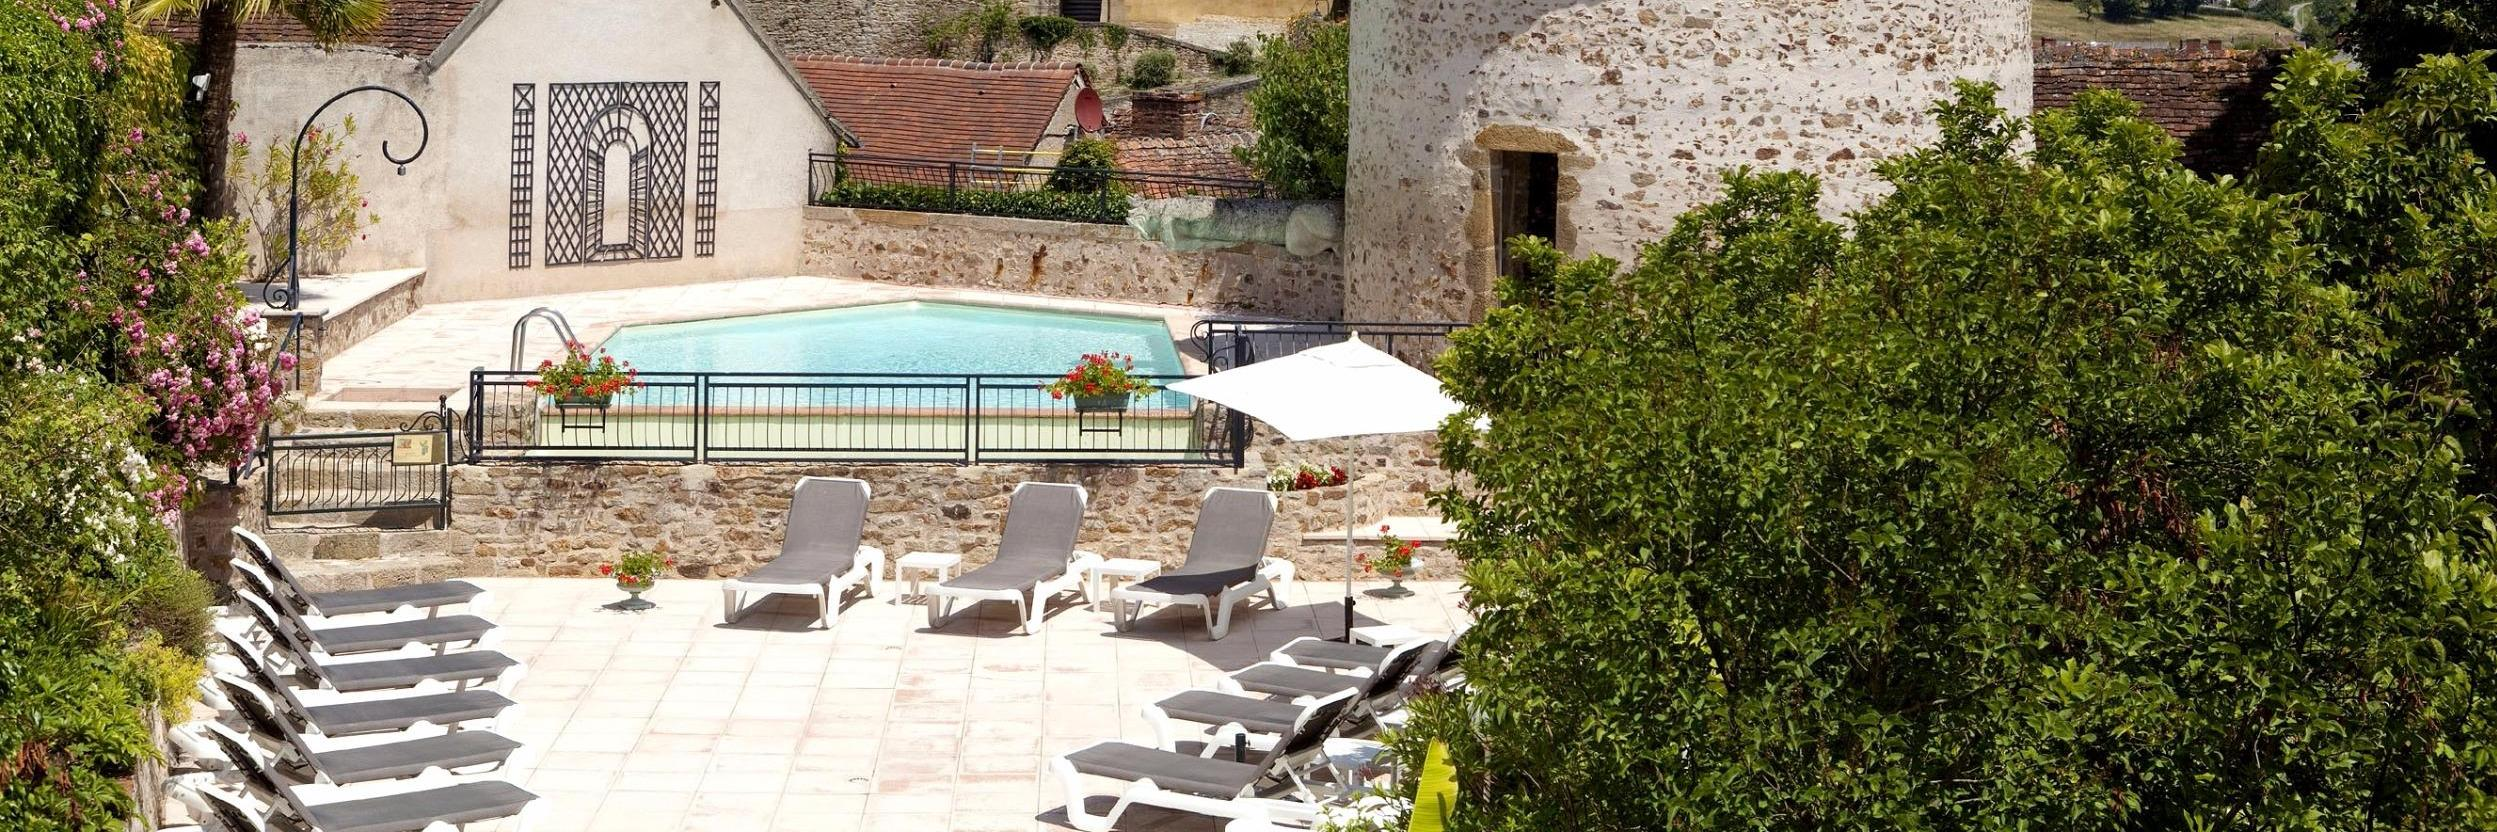 Grand Hôtel Montespan-Talleyrand -